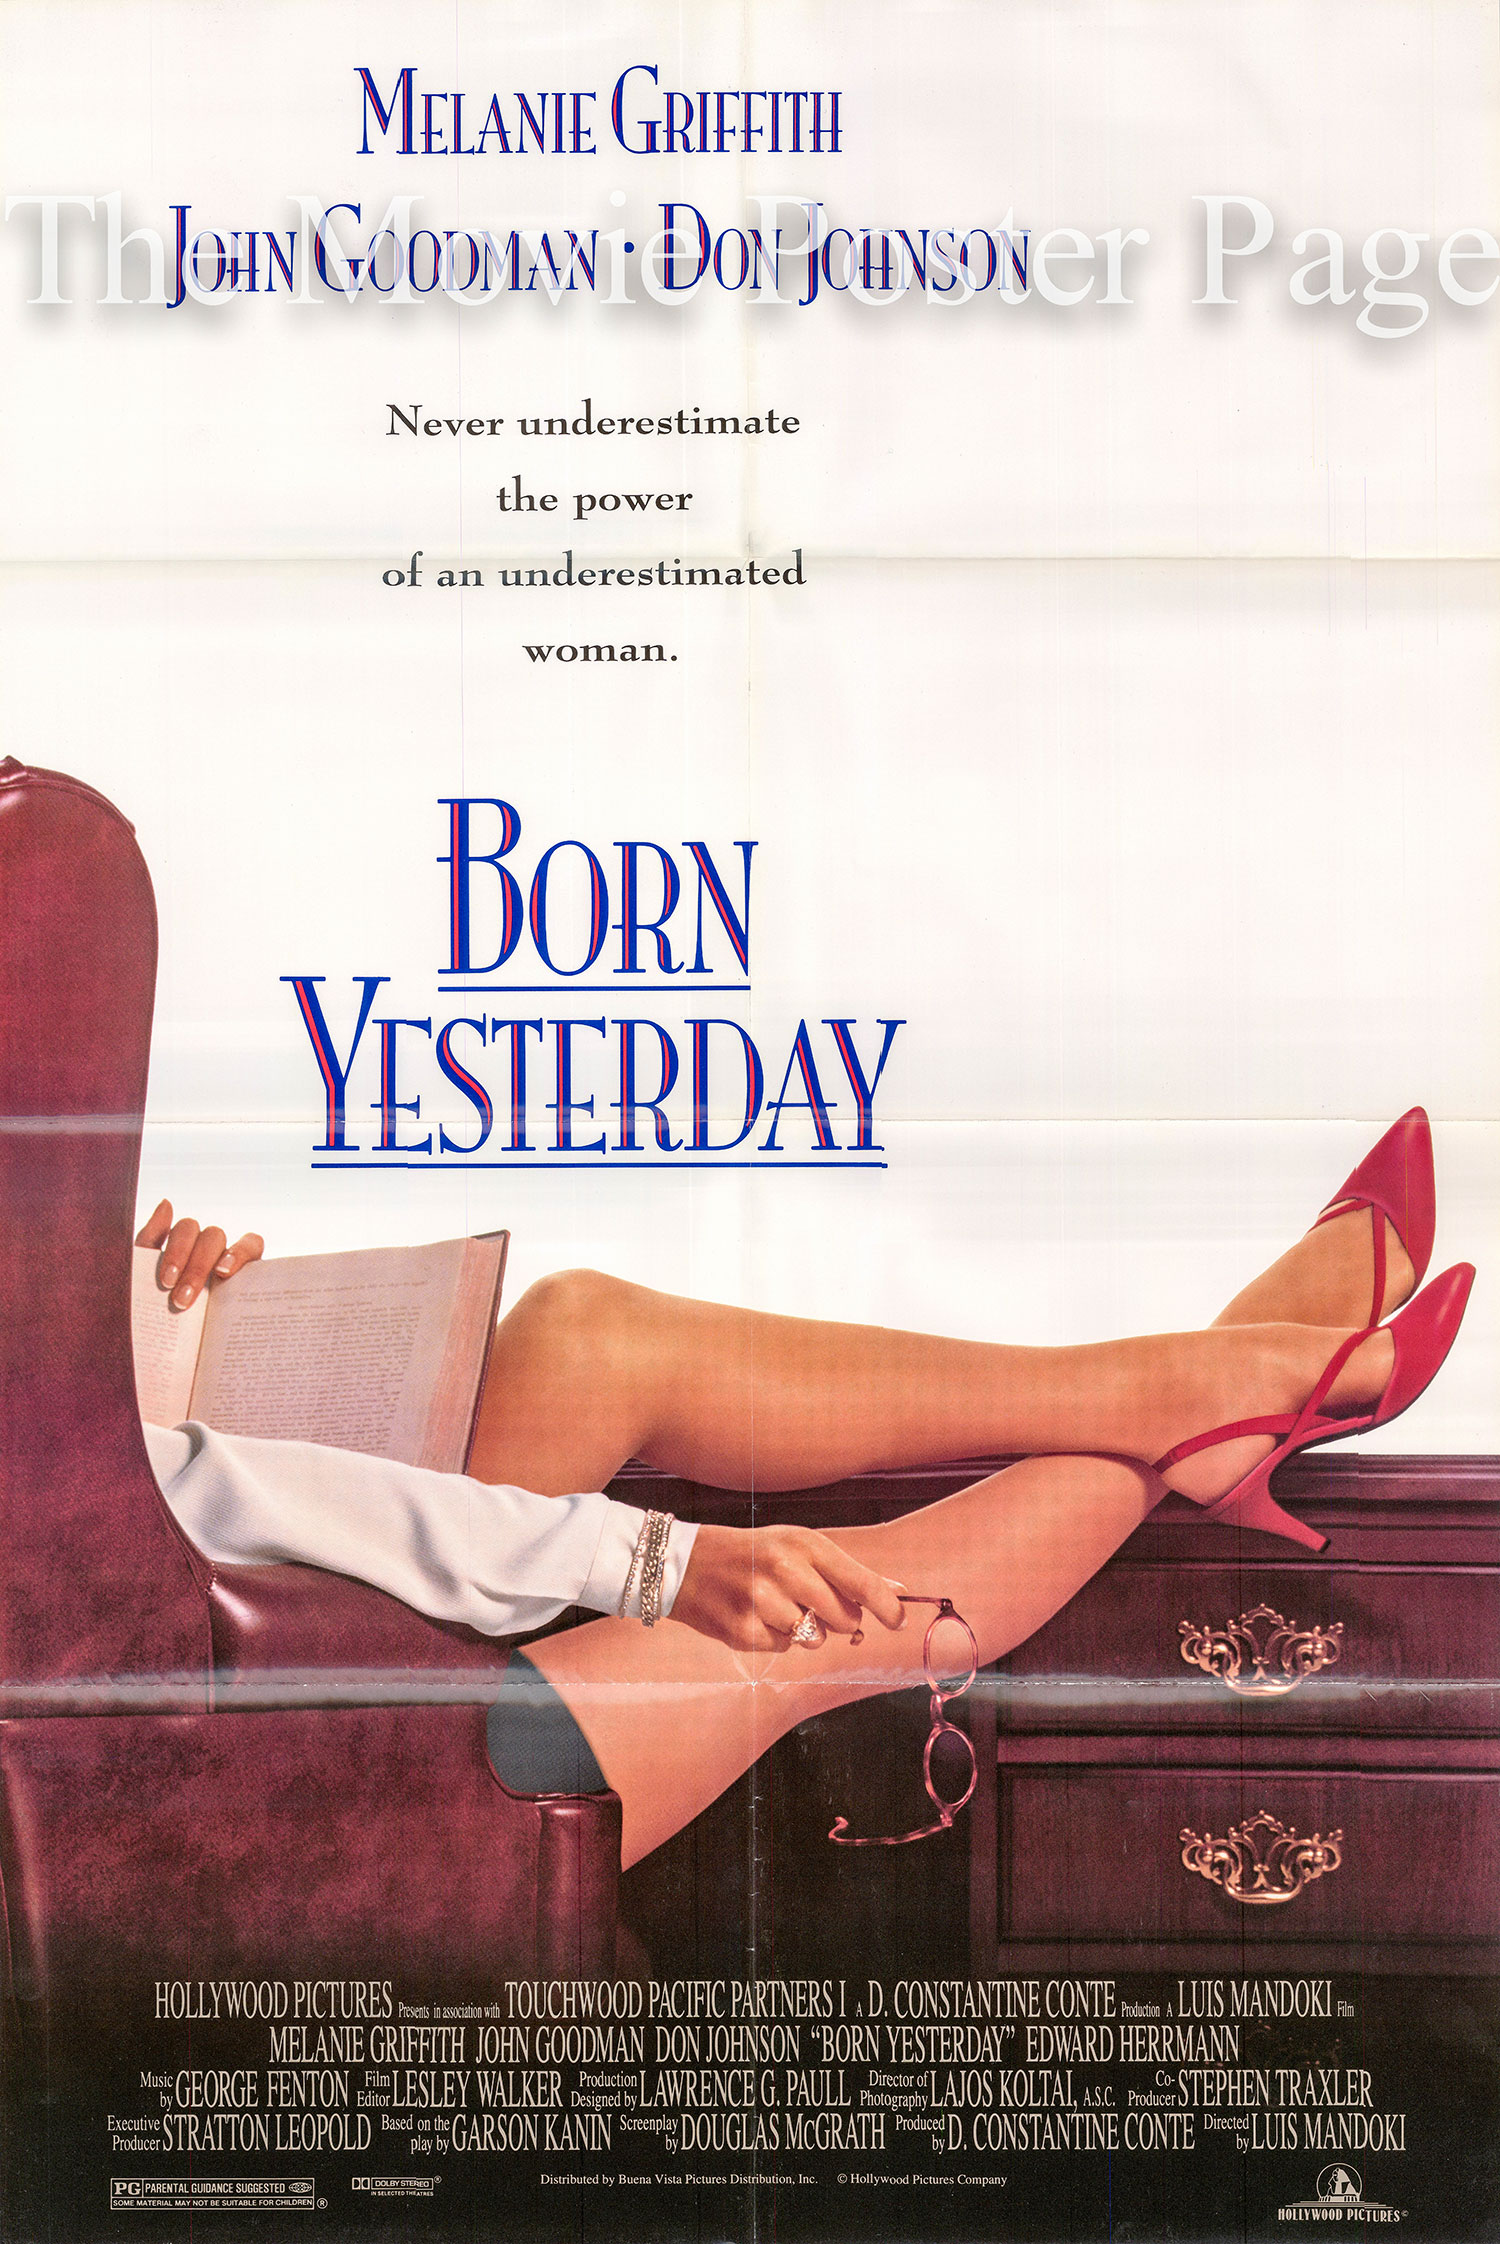 Pictured is a US promotional poster for the 1993 Luis Mandoki film Born Yesterday starring Melanie Griffith.